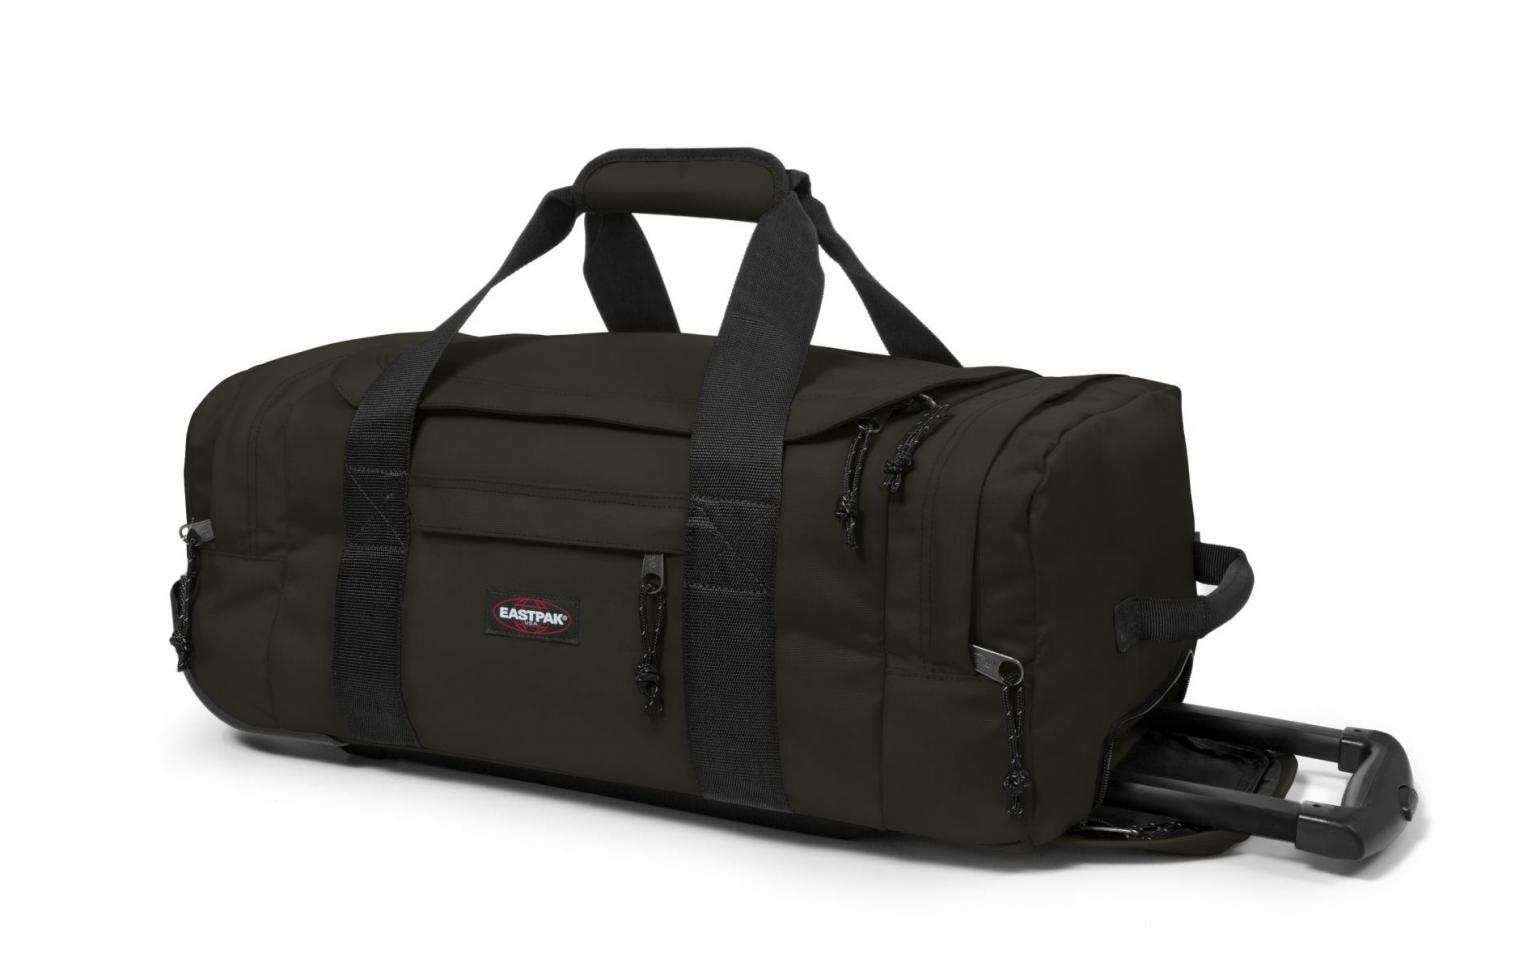 Eastpak Leatherface S Reisetrolley Bush Khaki dunkelgrün